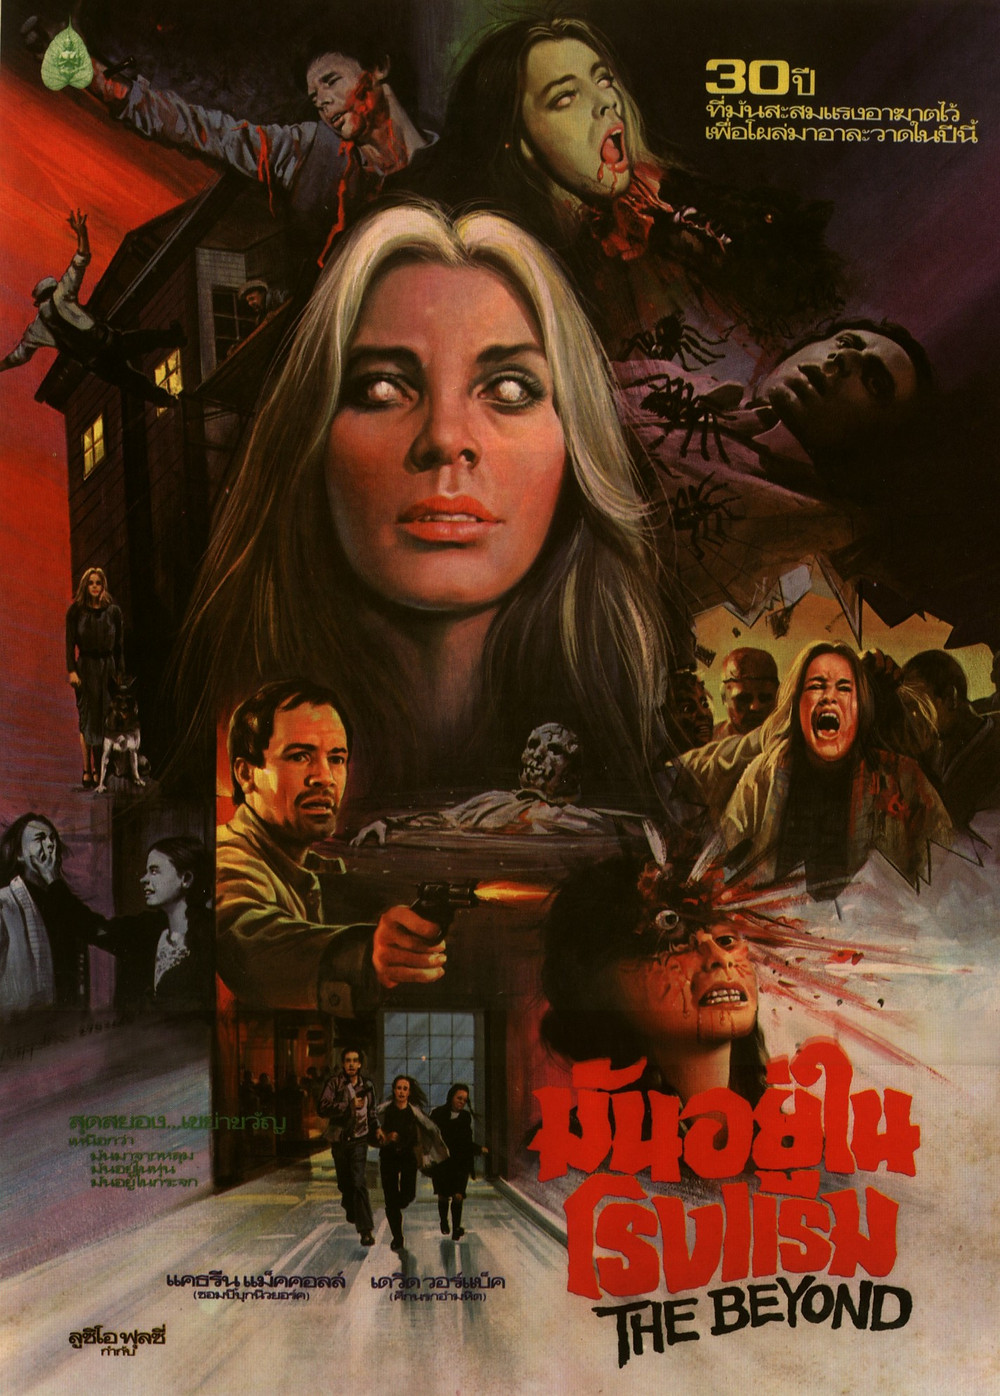 Foreign movie poster for Lucio Fulci's The Beyond featuring numerous scenes of death